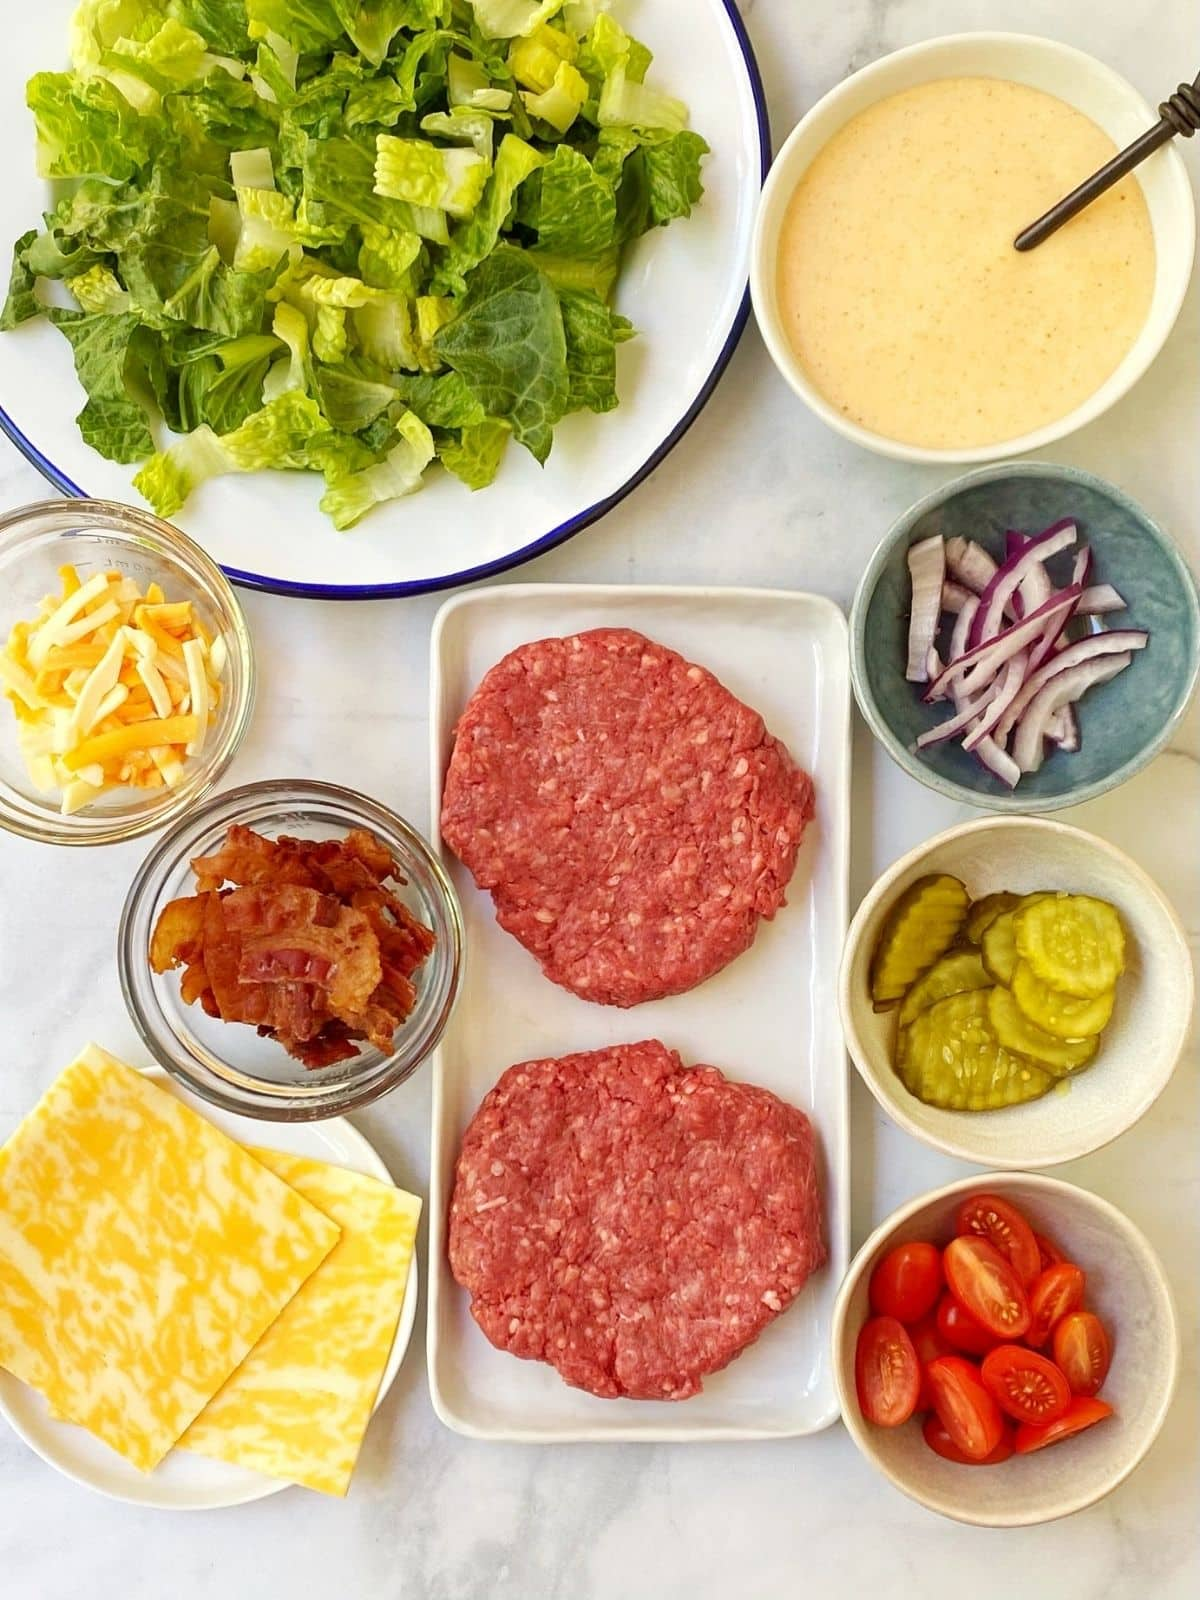 array of ingredients - beef, lettuce and salad toppings, burger sauce dressing